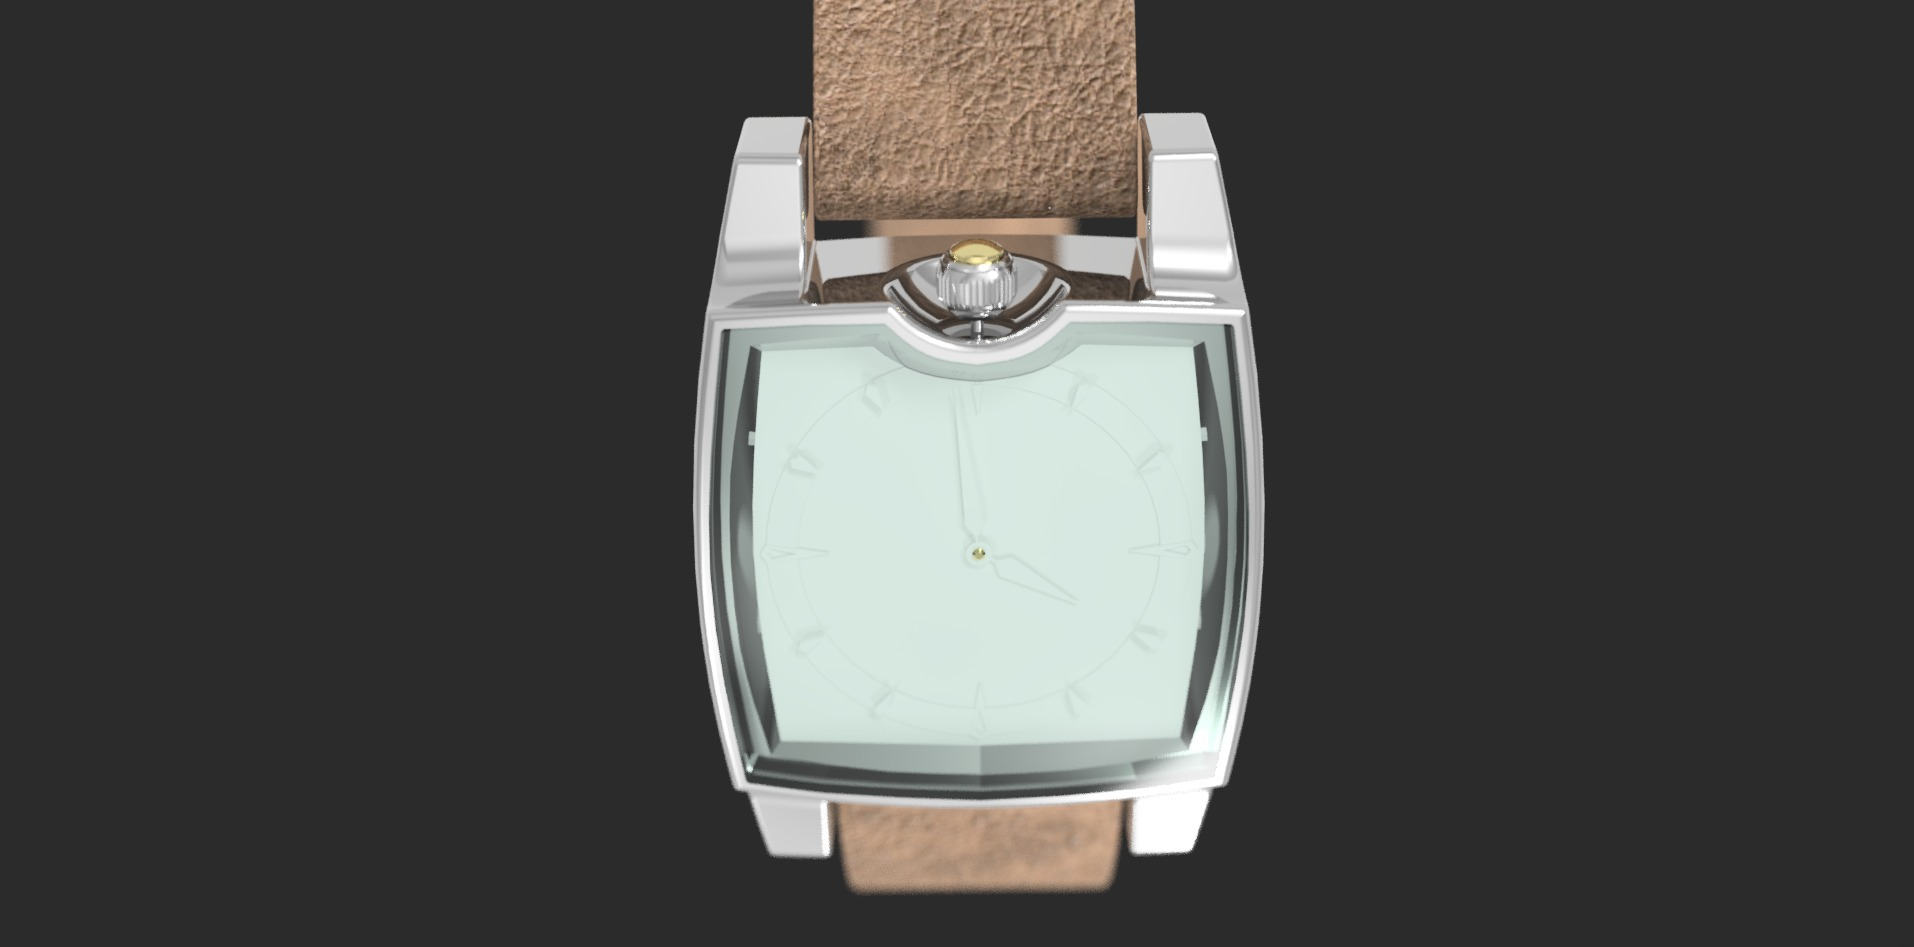 Square_watch_top_view2